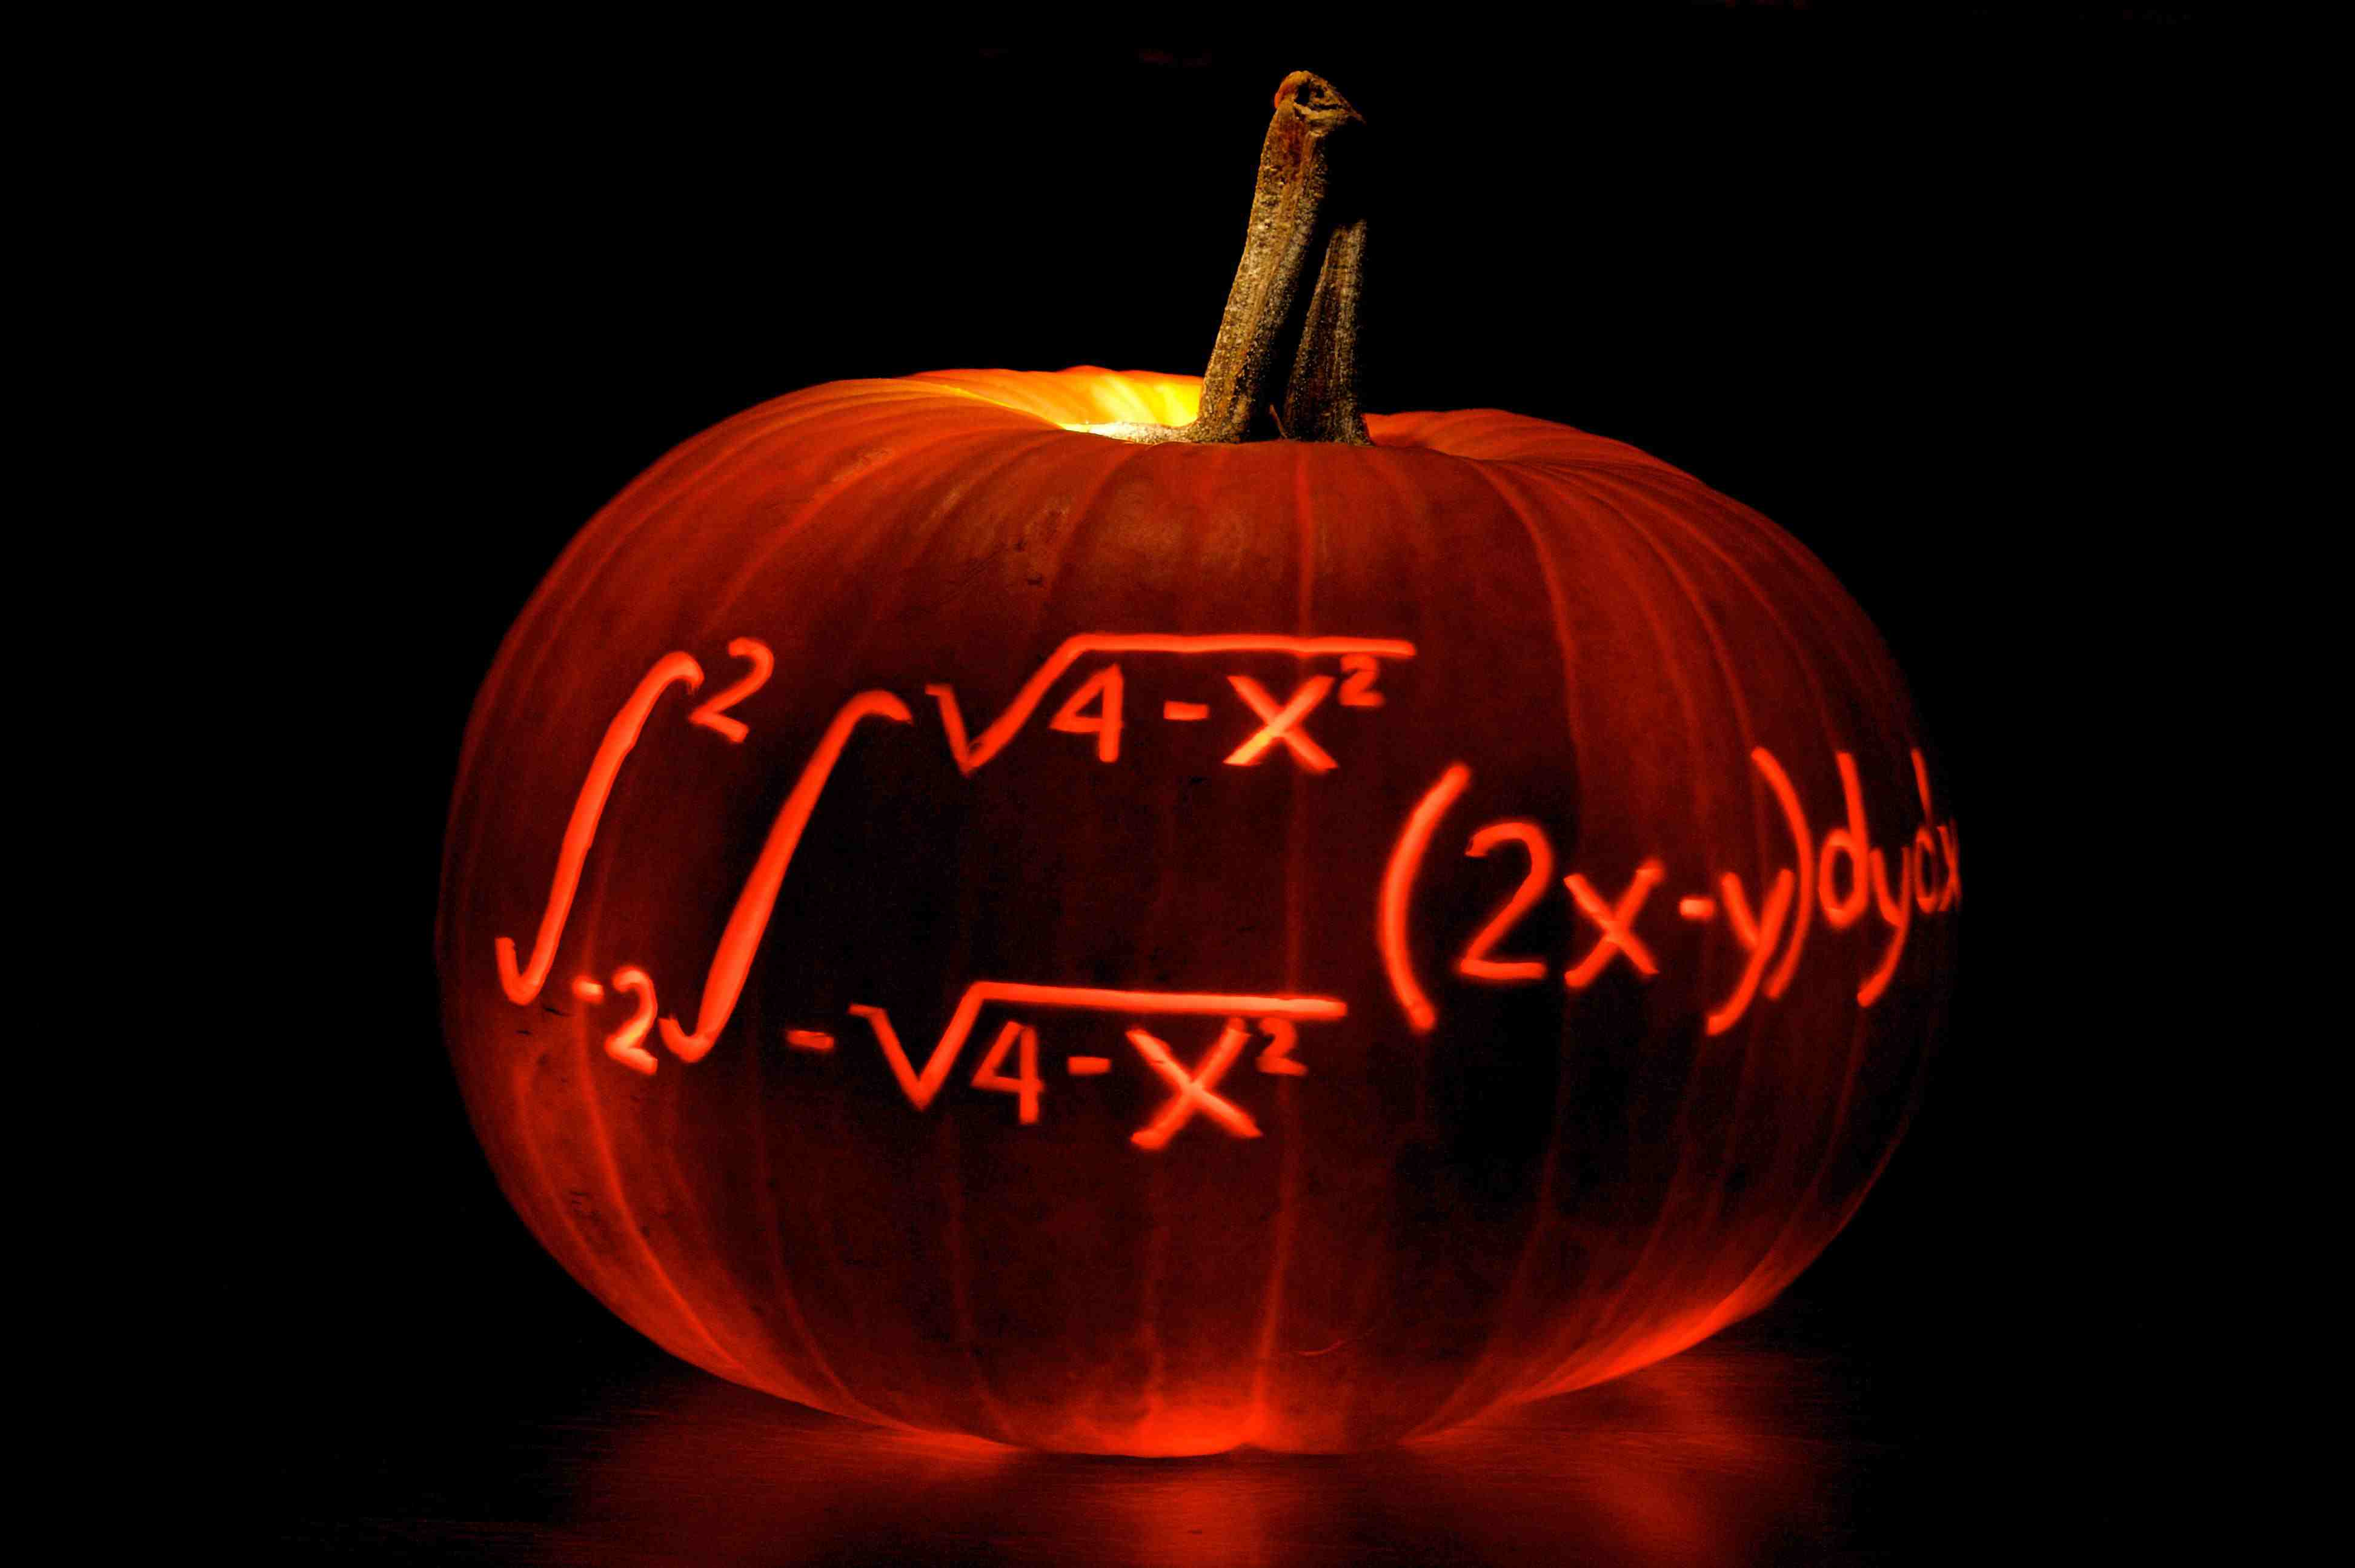 Carved pumpkin with math equation